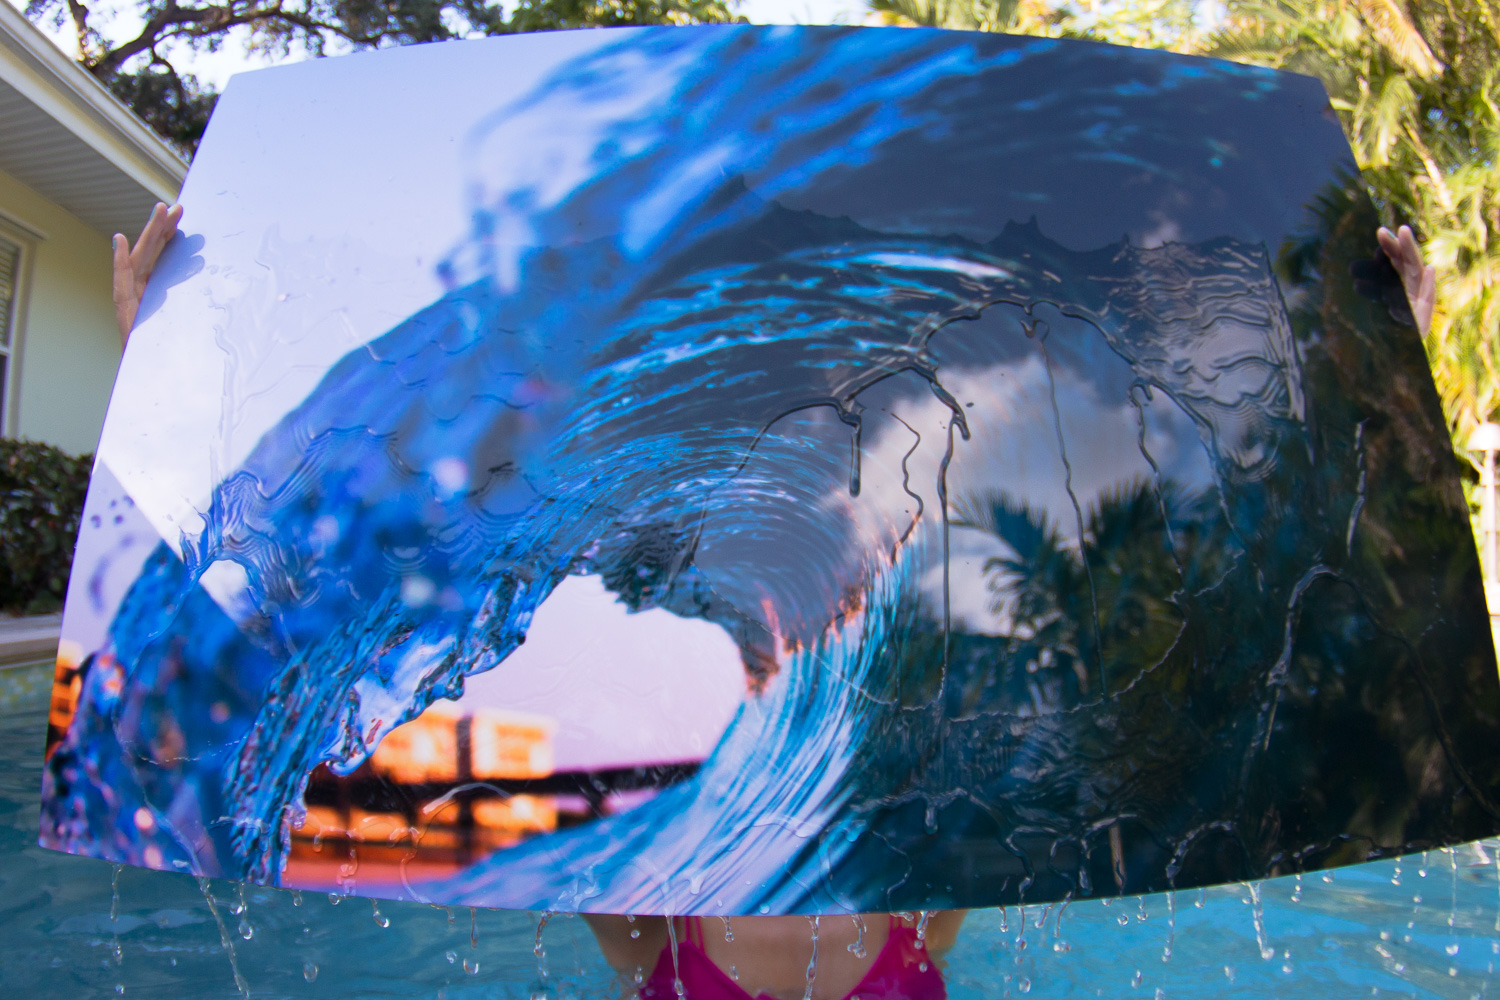 As good as new. Water photography on water photography, I love it!